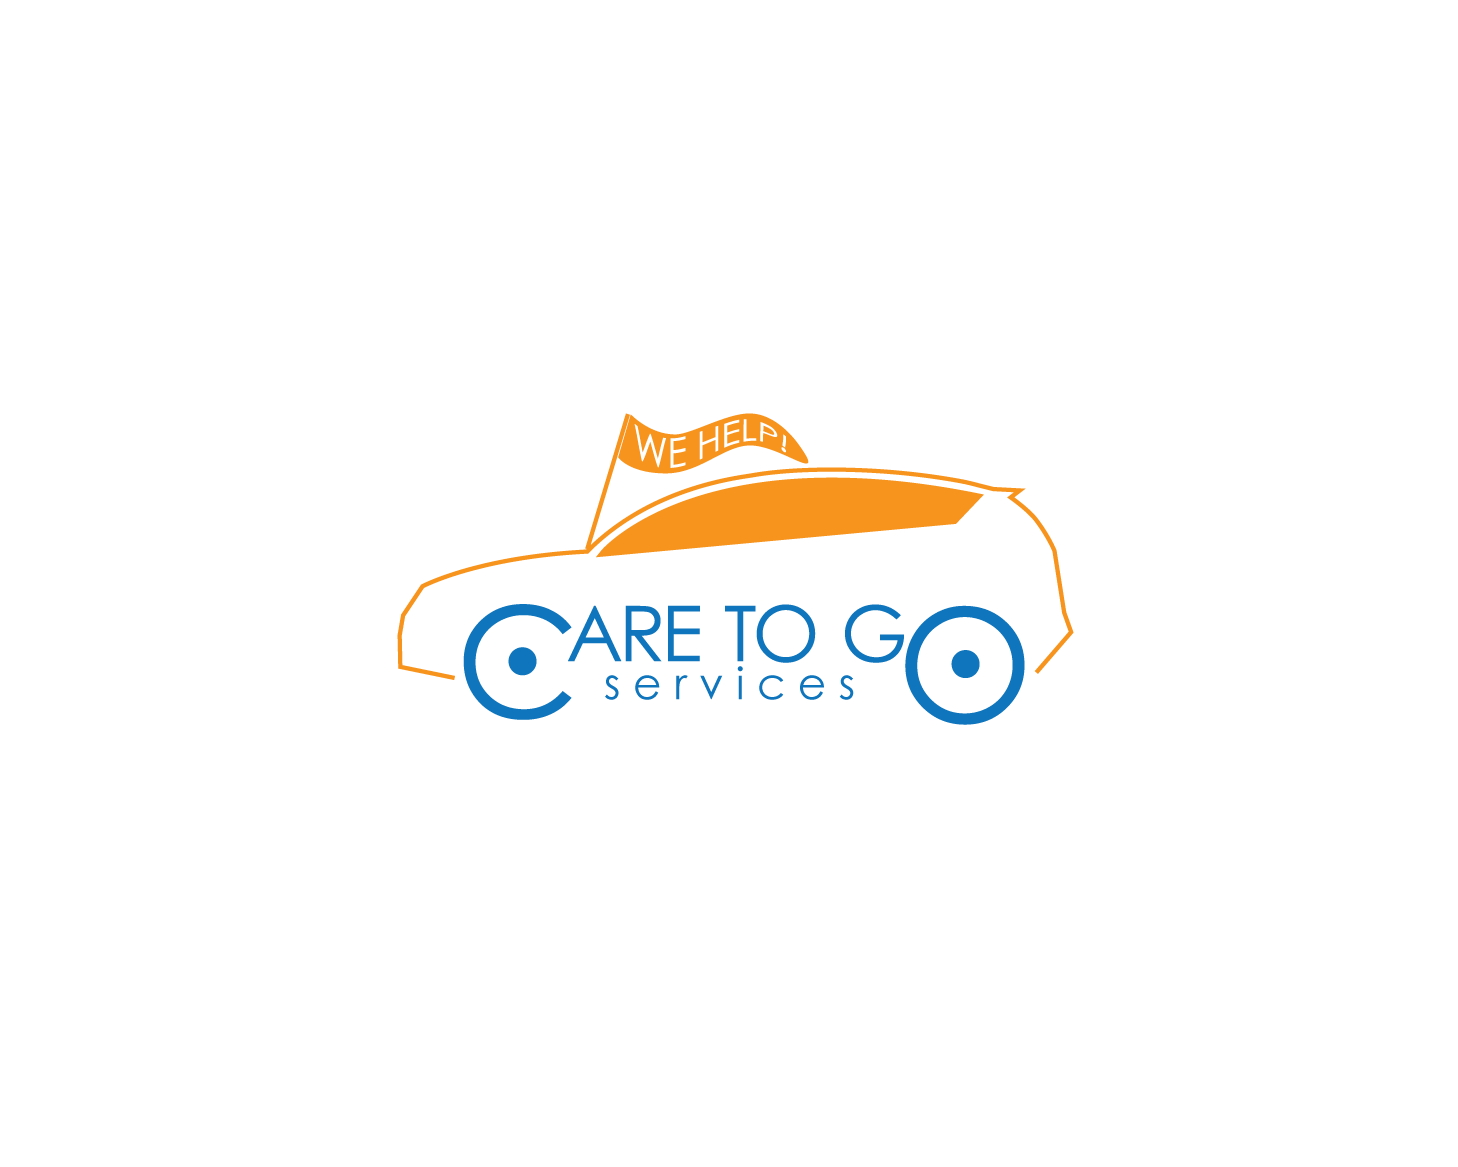 Logo Design by Roy Ferre - Entry No. 269 in the Logo Design Contest Care To Go Services.